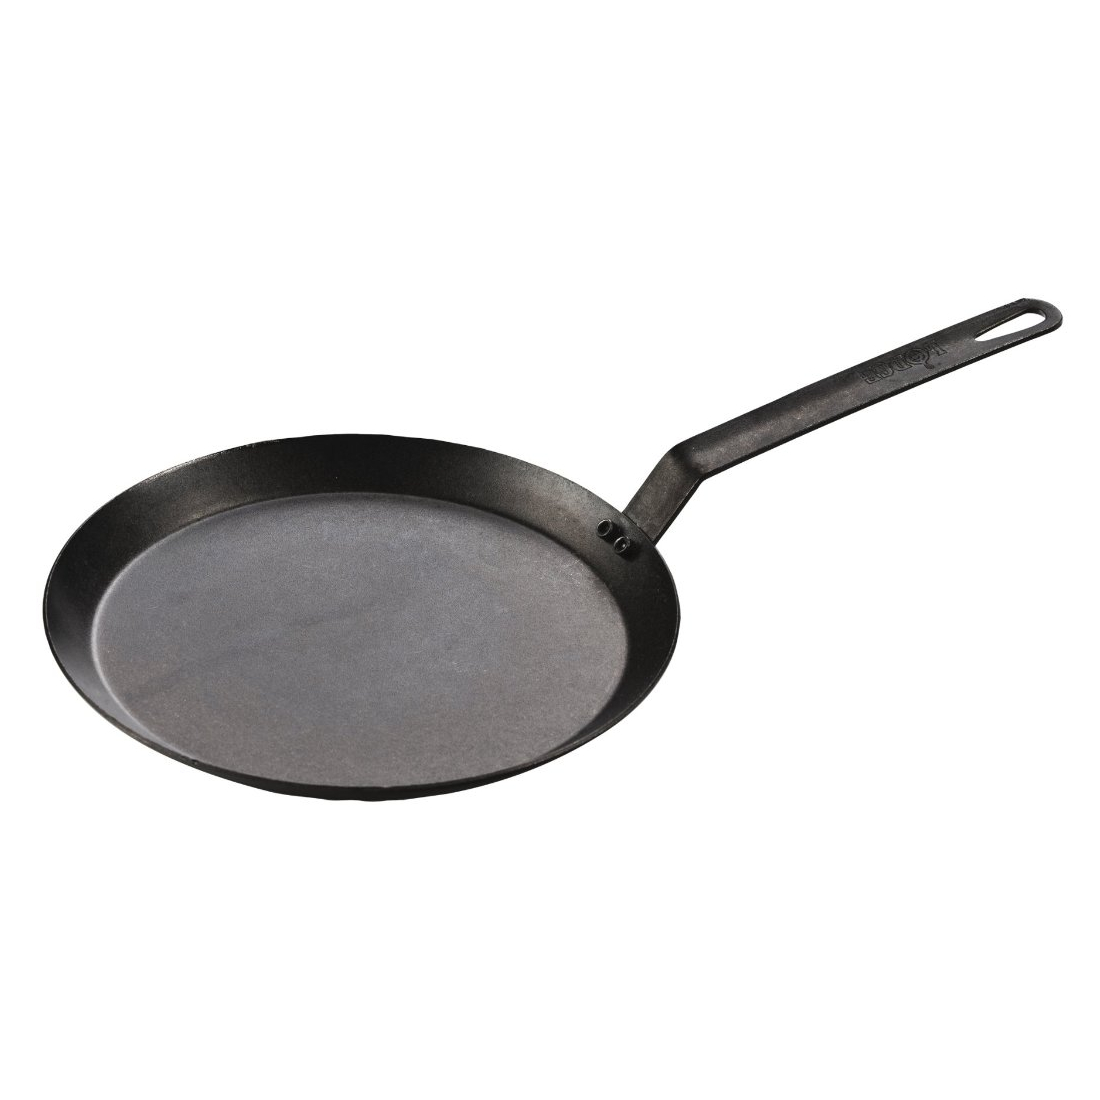 Lodge Pre-Seasoned Carbon Steel 11 Inch Round Griddle